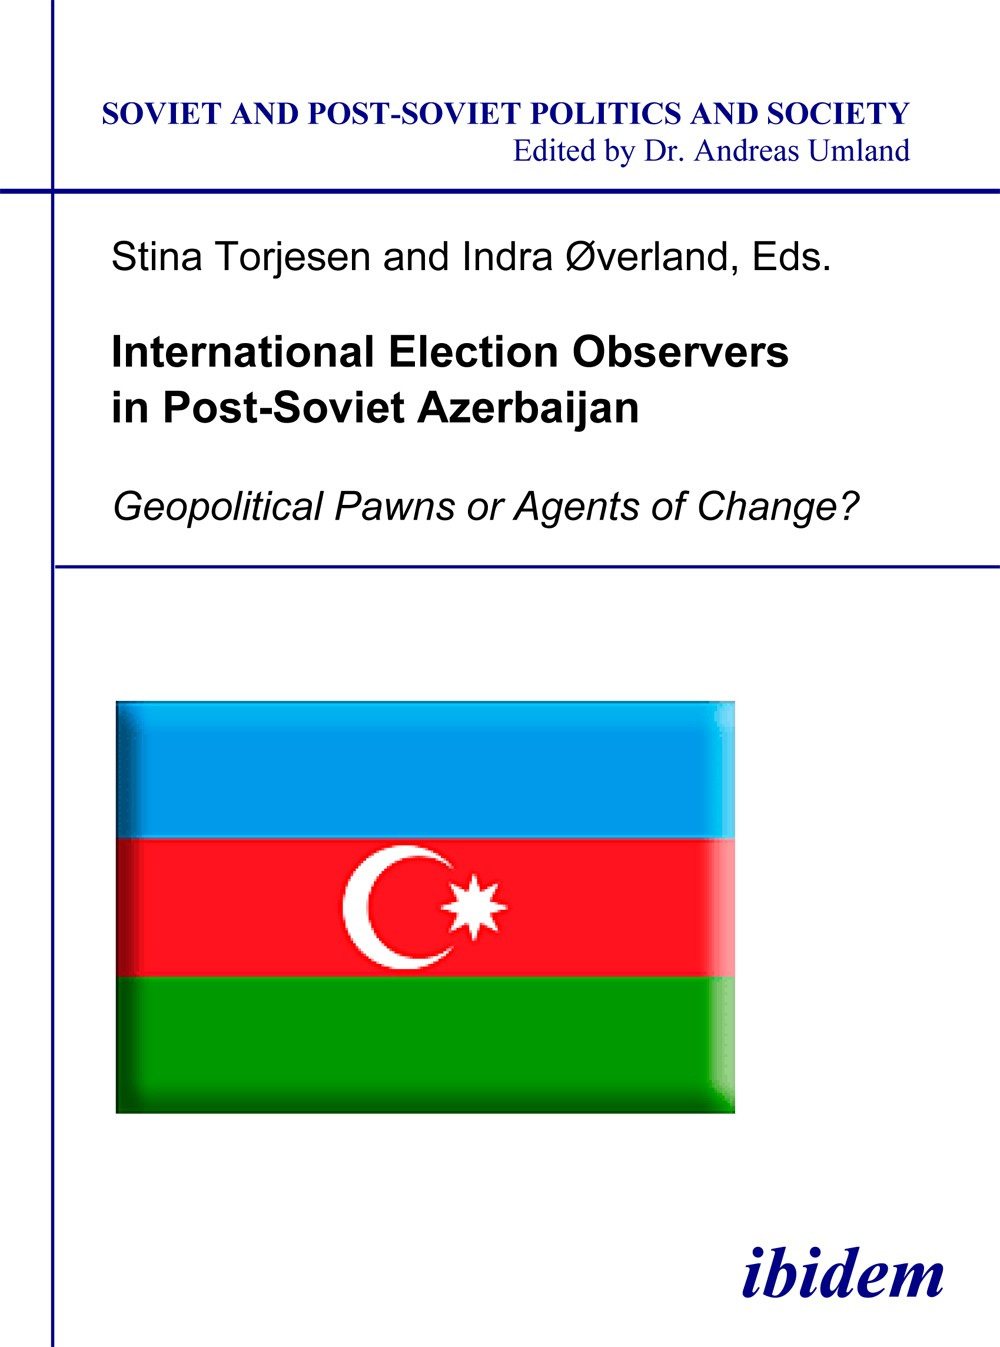 International Election Observers in Post-Soviet Azerbaijan